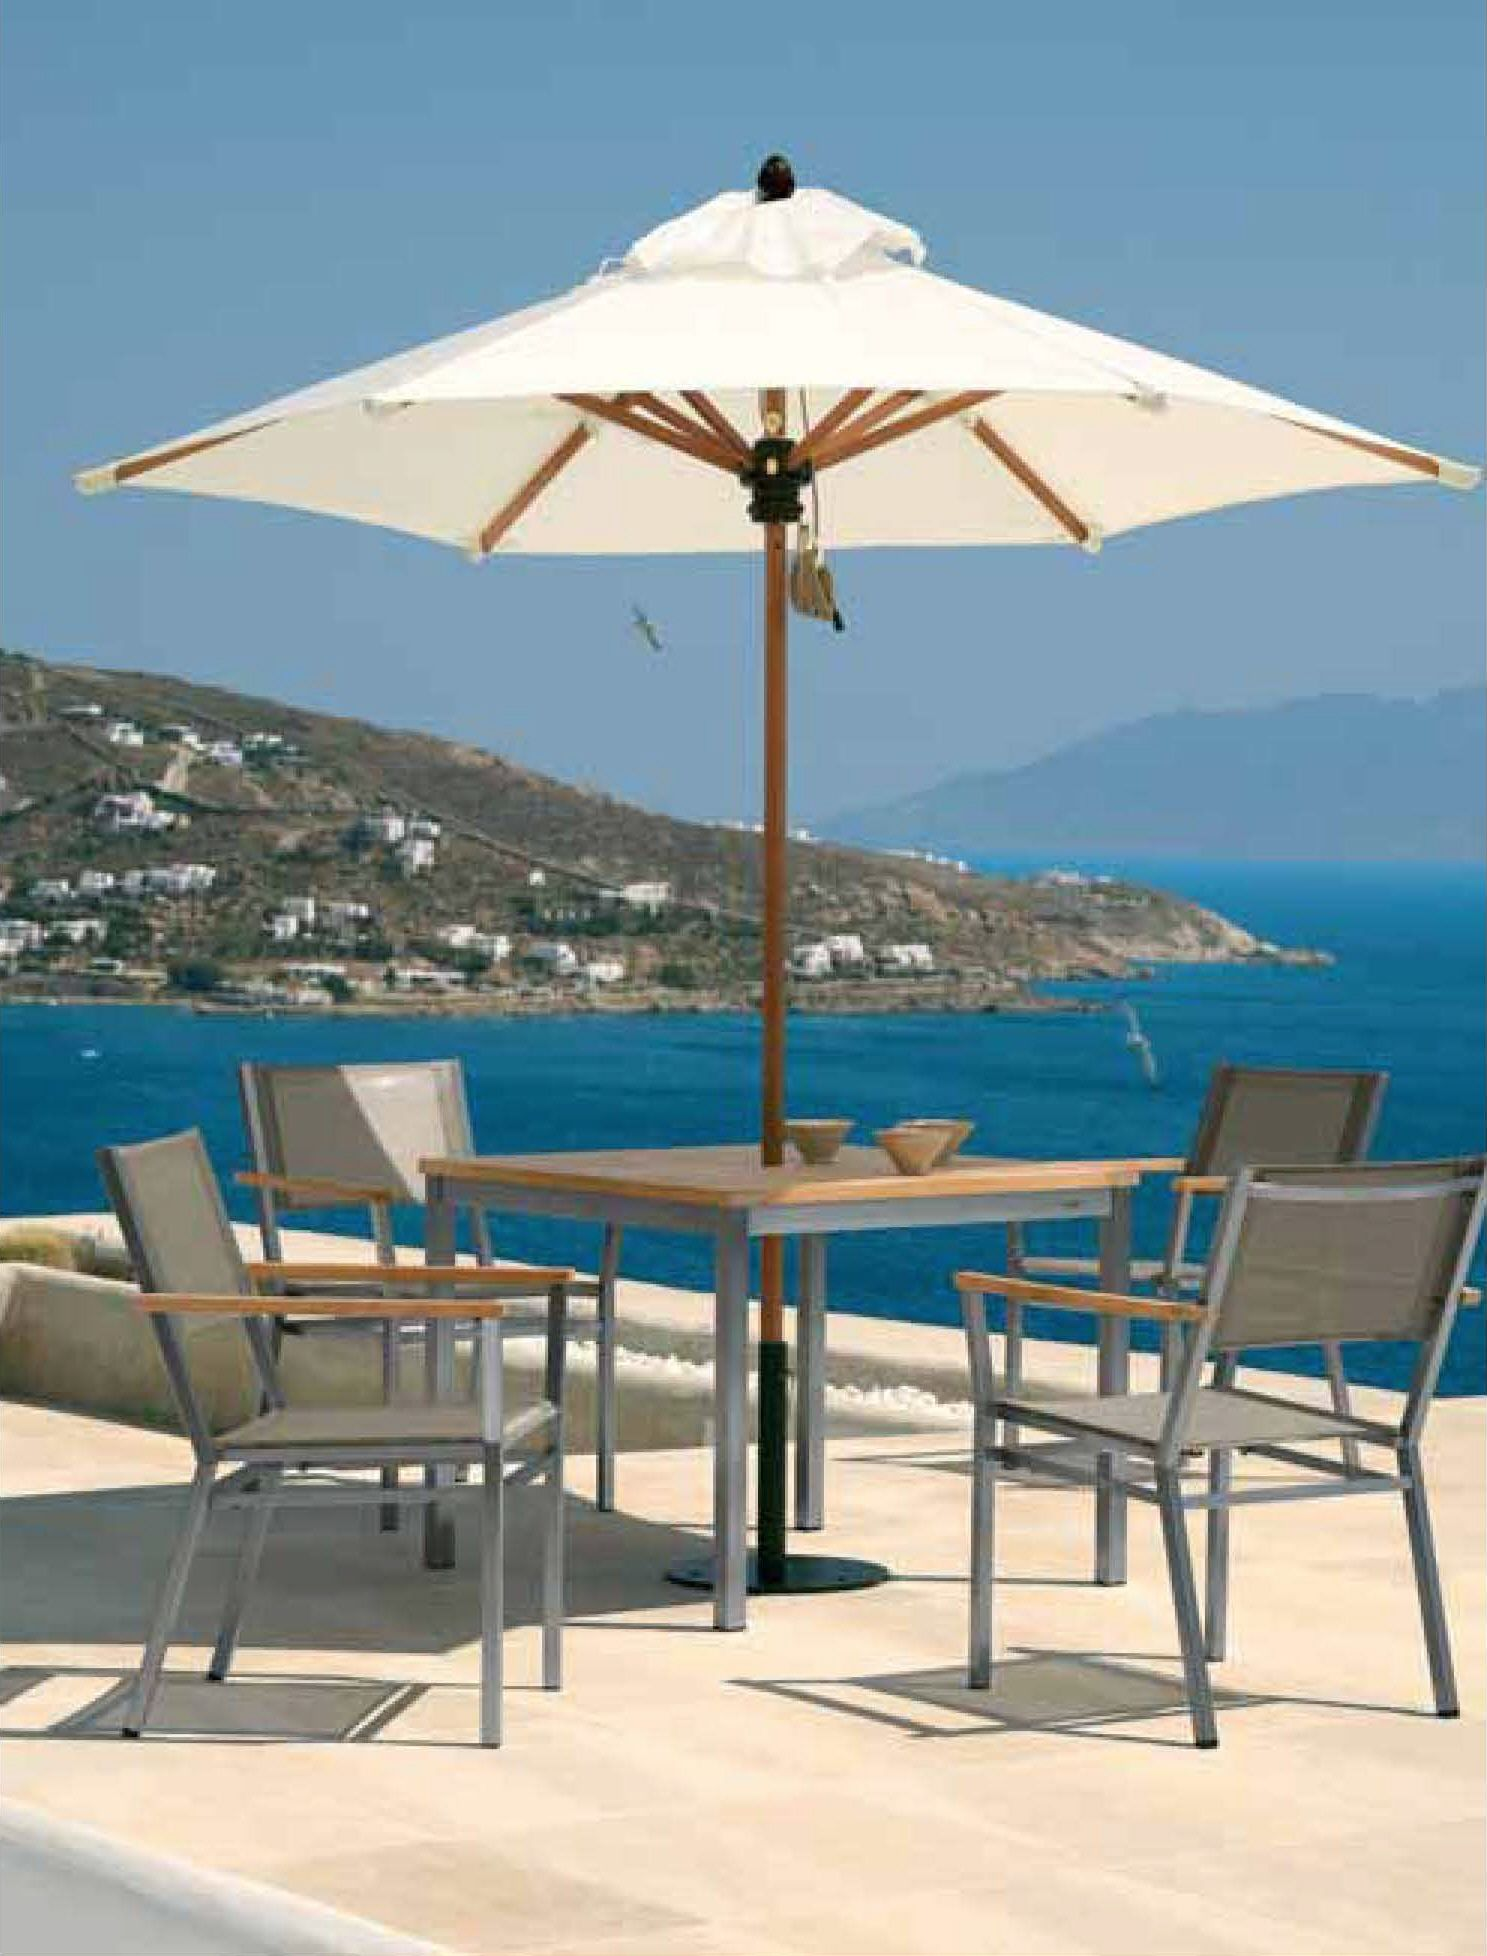 Barlow tyrie use two grades of stainless steel 316 grade commonly known as marine grade and 304 grade more commonly used for garden furniture bo